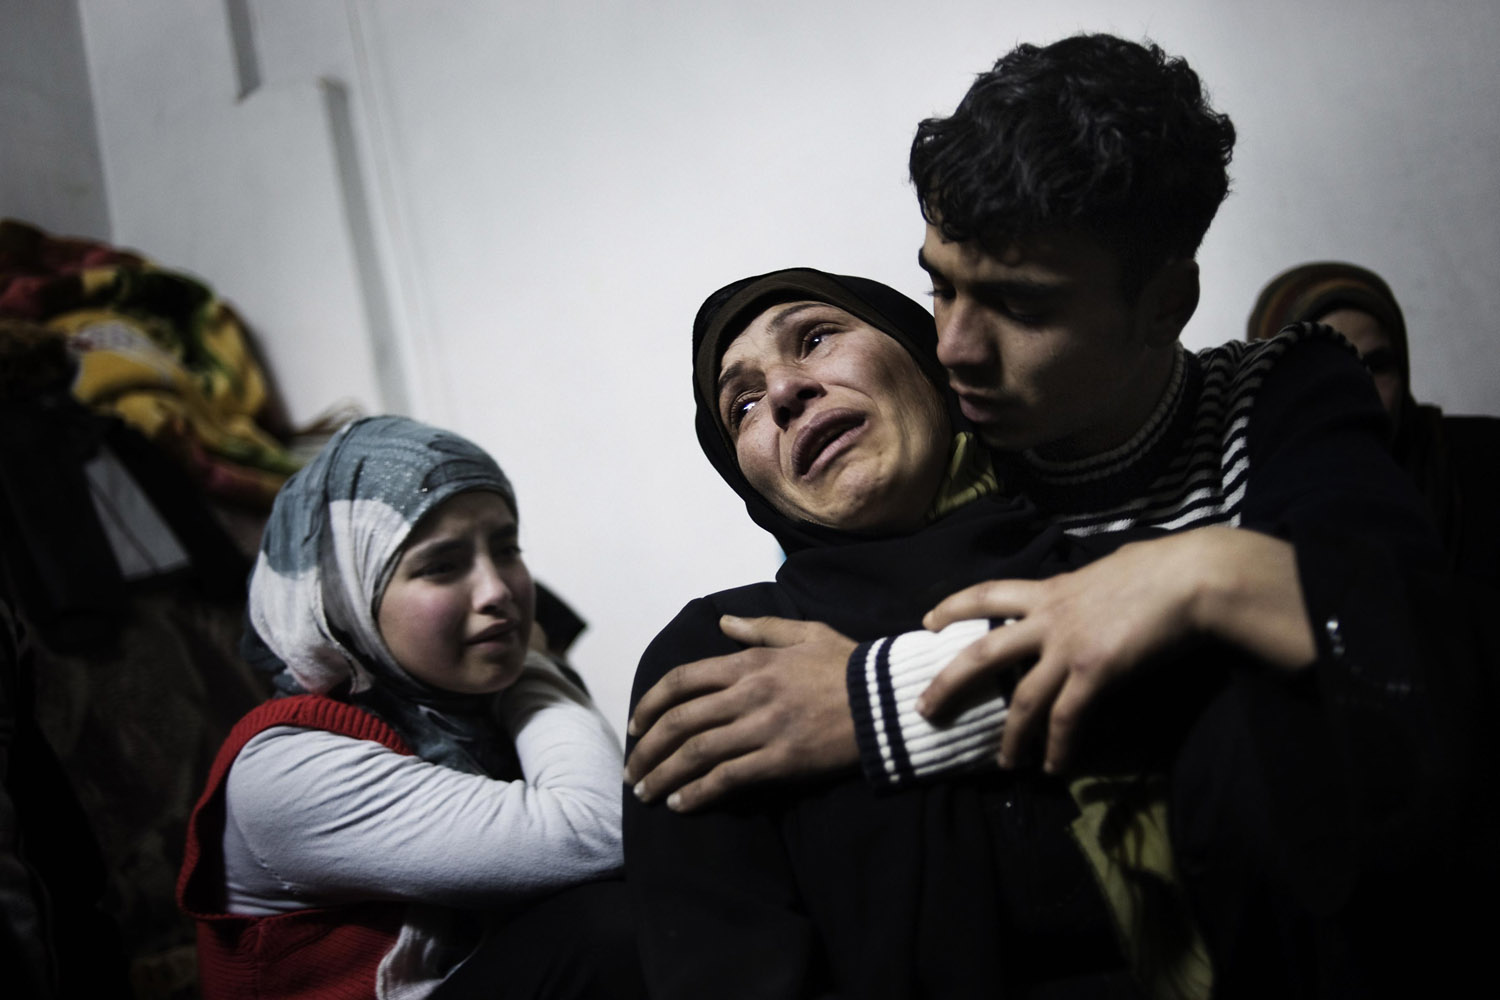 Alessio Romenzi                                                              A mother and her children cry over the loss of two of her sons, who were killed in a mortar attack launched by Assad forces in Homs province.                                                                So far, most of the killing in Syria — maybe 90% — has been innocent civilians. This is an example of that. When you realize that people like this are dying, sure that they're not guilty of anything, you realize how bad it can be. It was just a family sitting in their house. I think that, so far, journalists are the only chance that Syria has. We just try to make as much noise as possible.